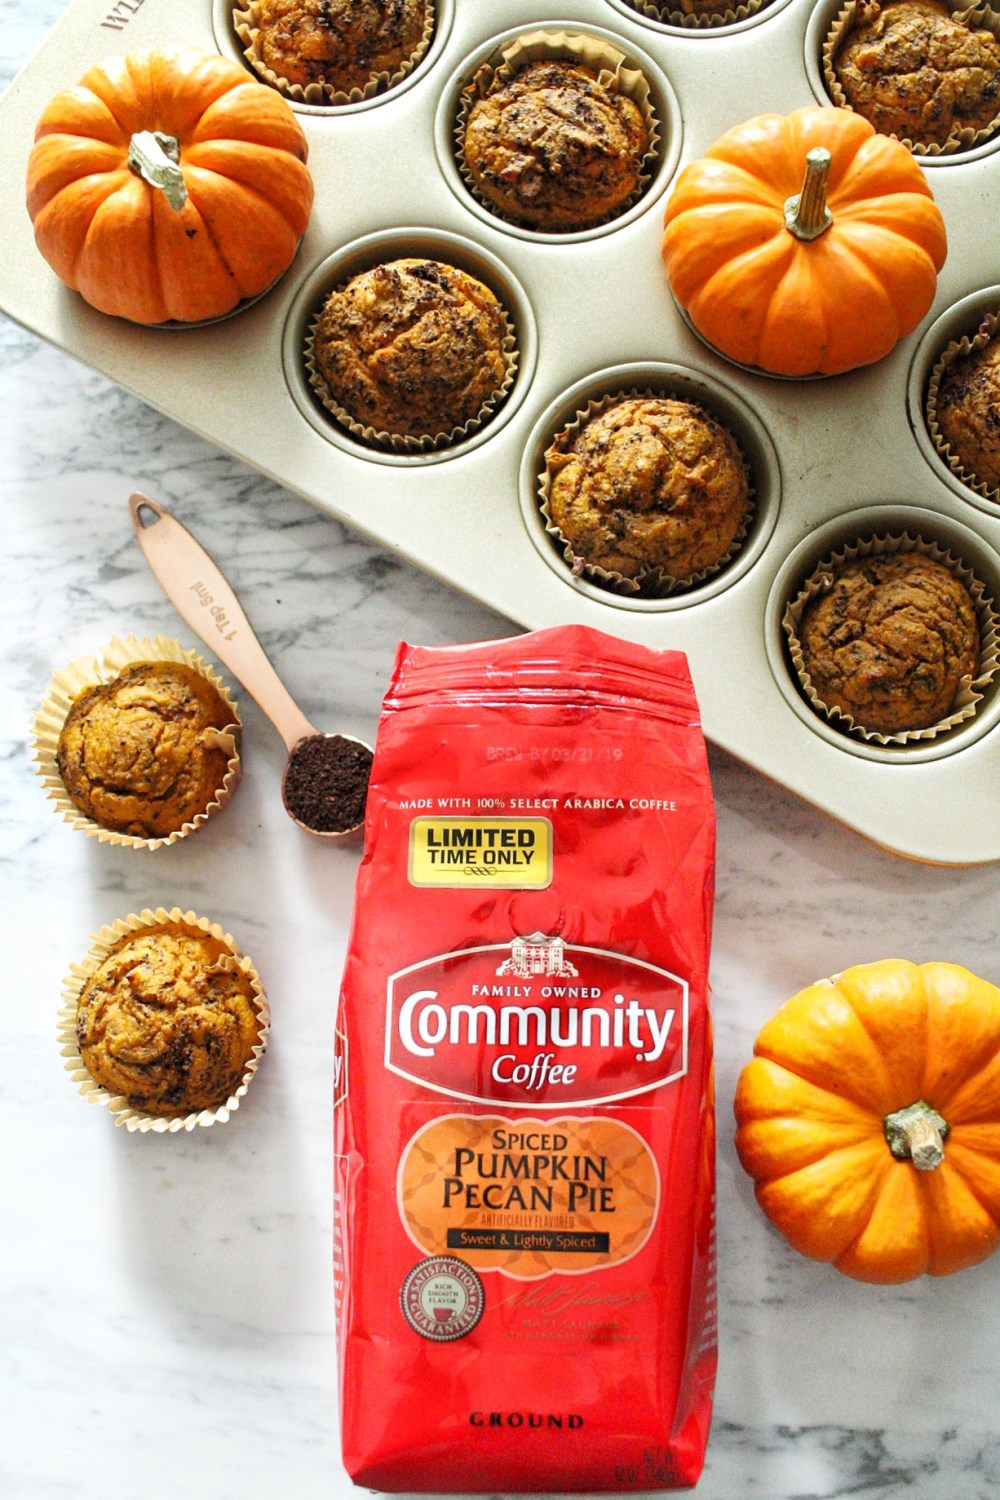 Spiced Pumpkin Blender Muffins with Community Coffee